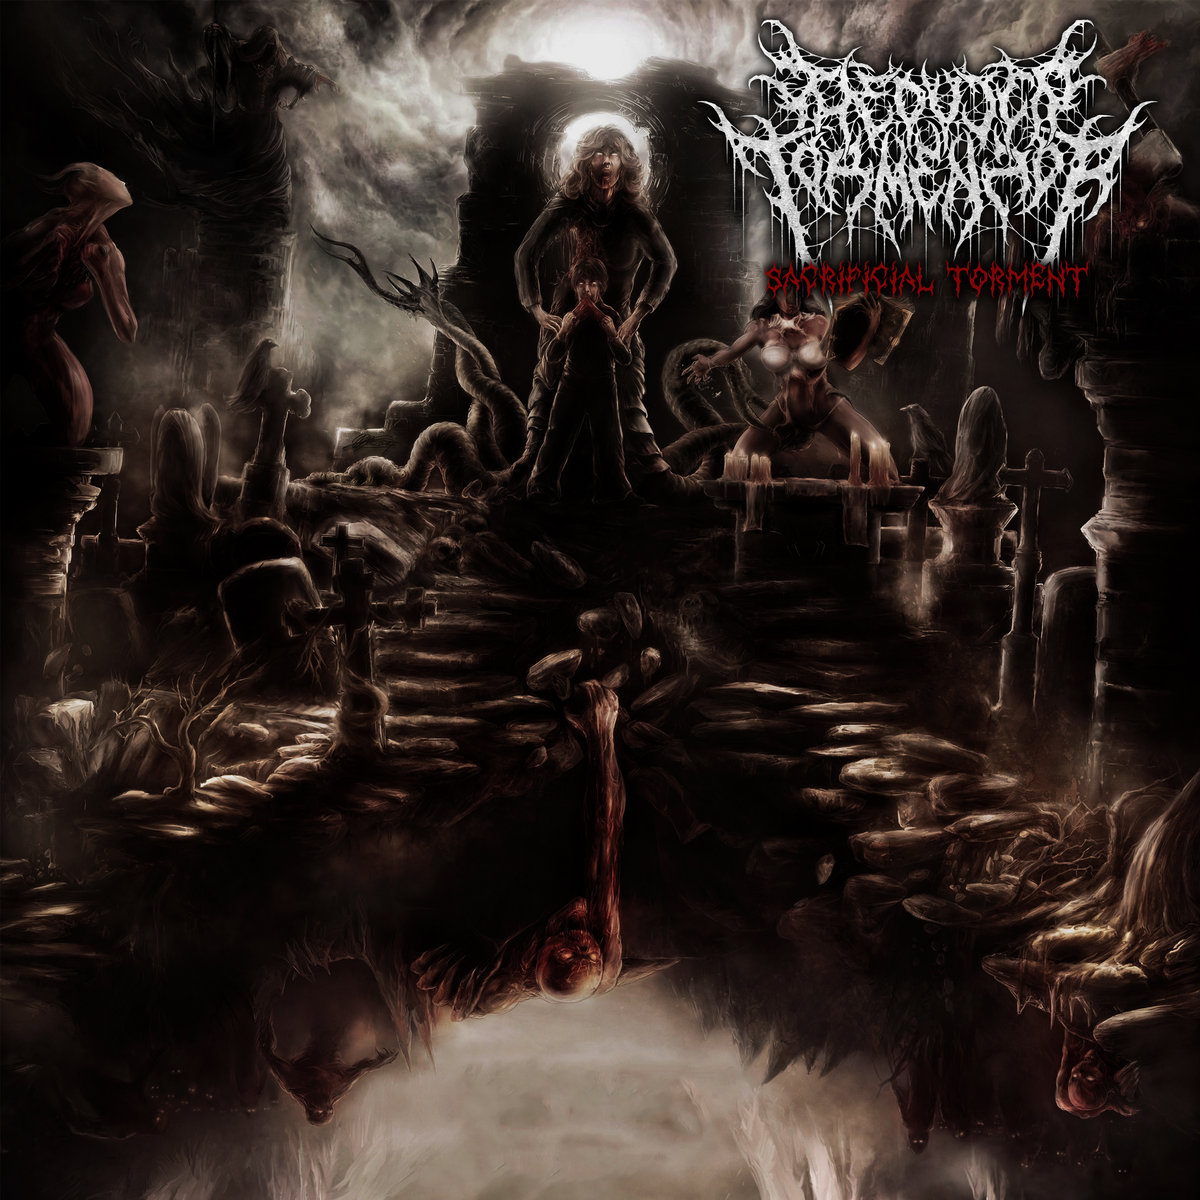 Damnation Suffering Eternally Damned | The Outer Tormentor